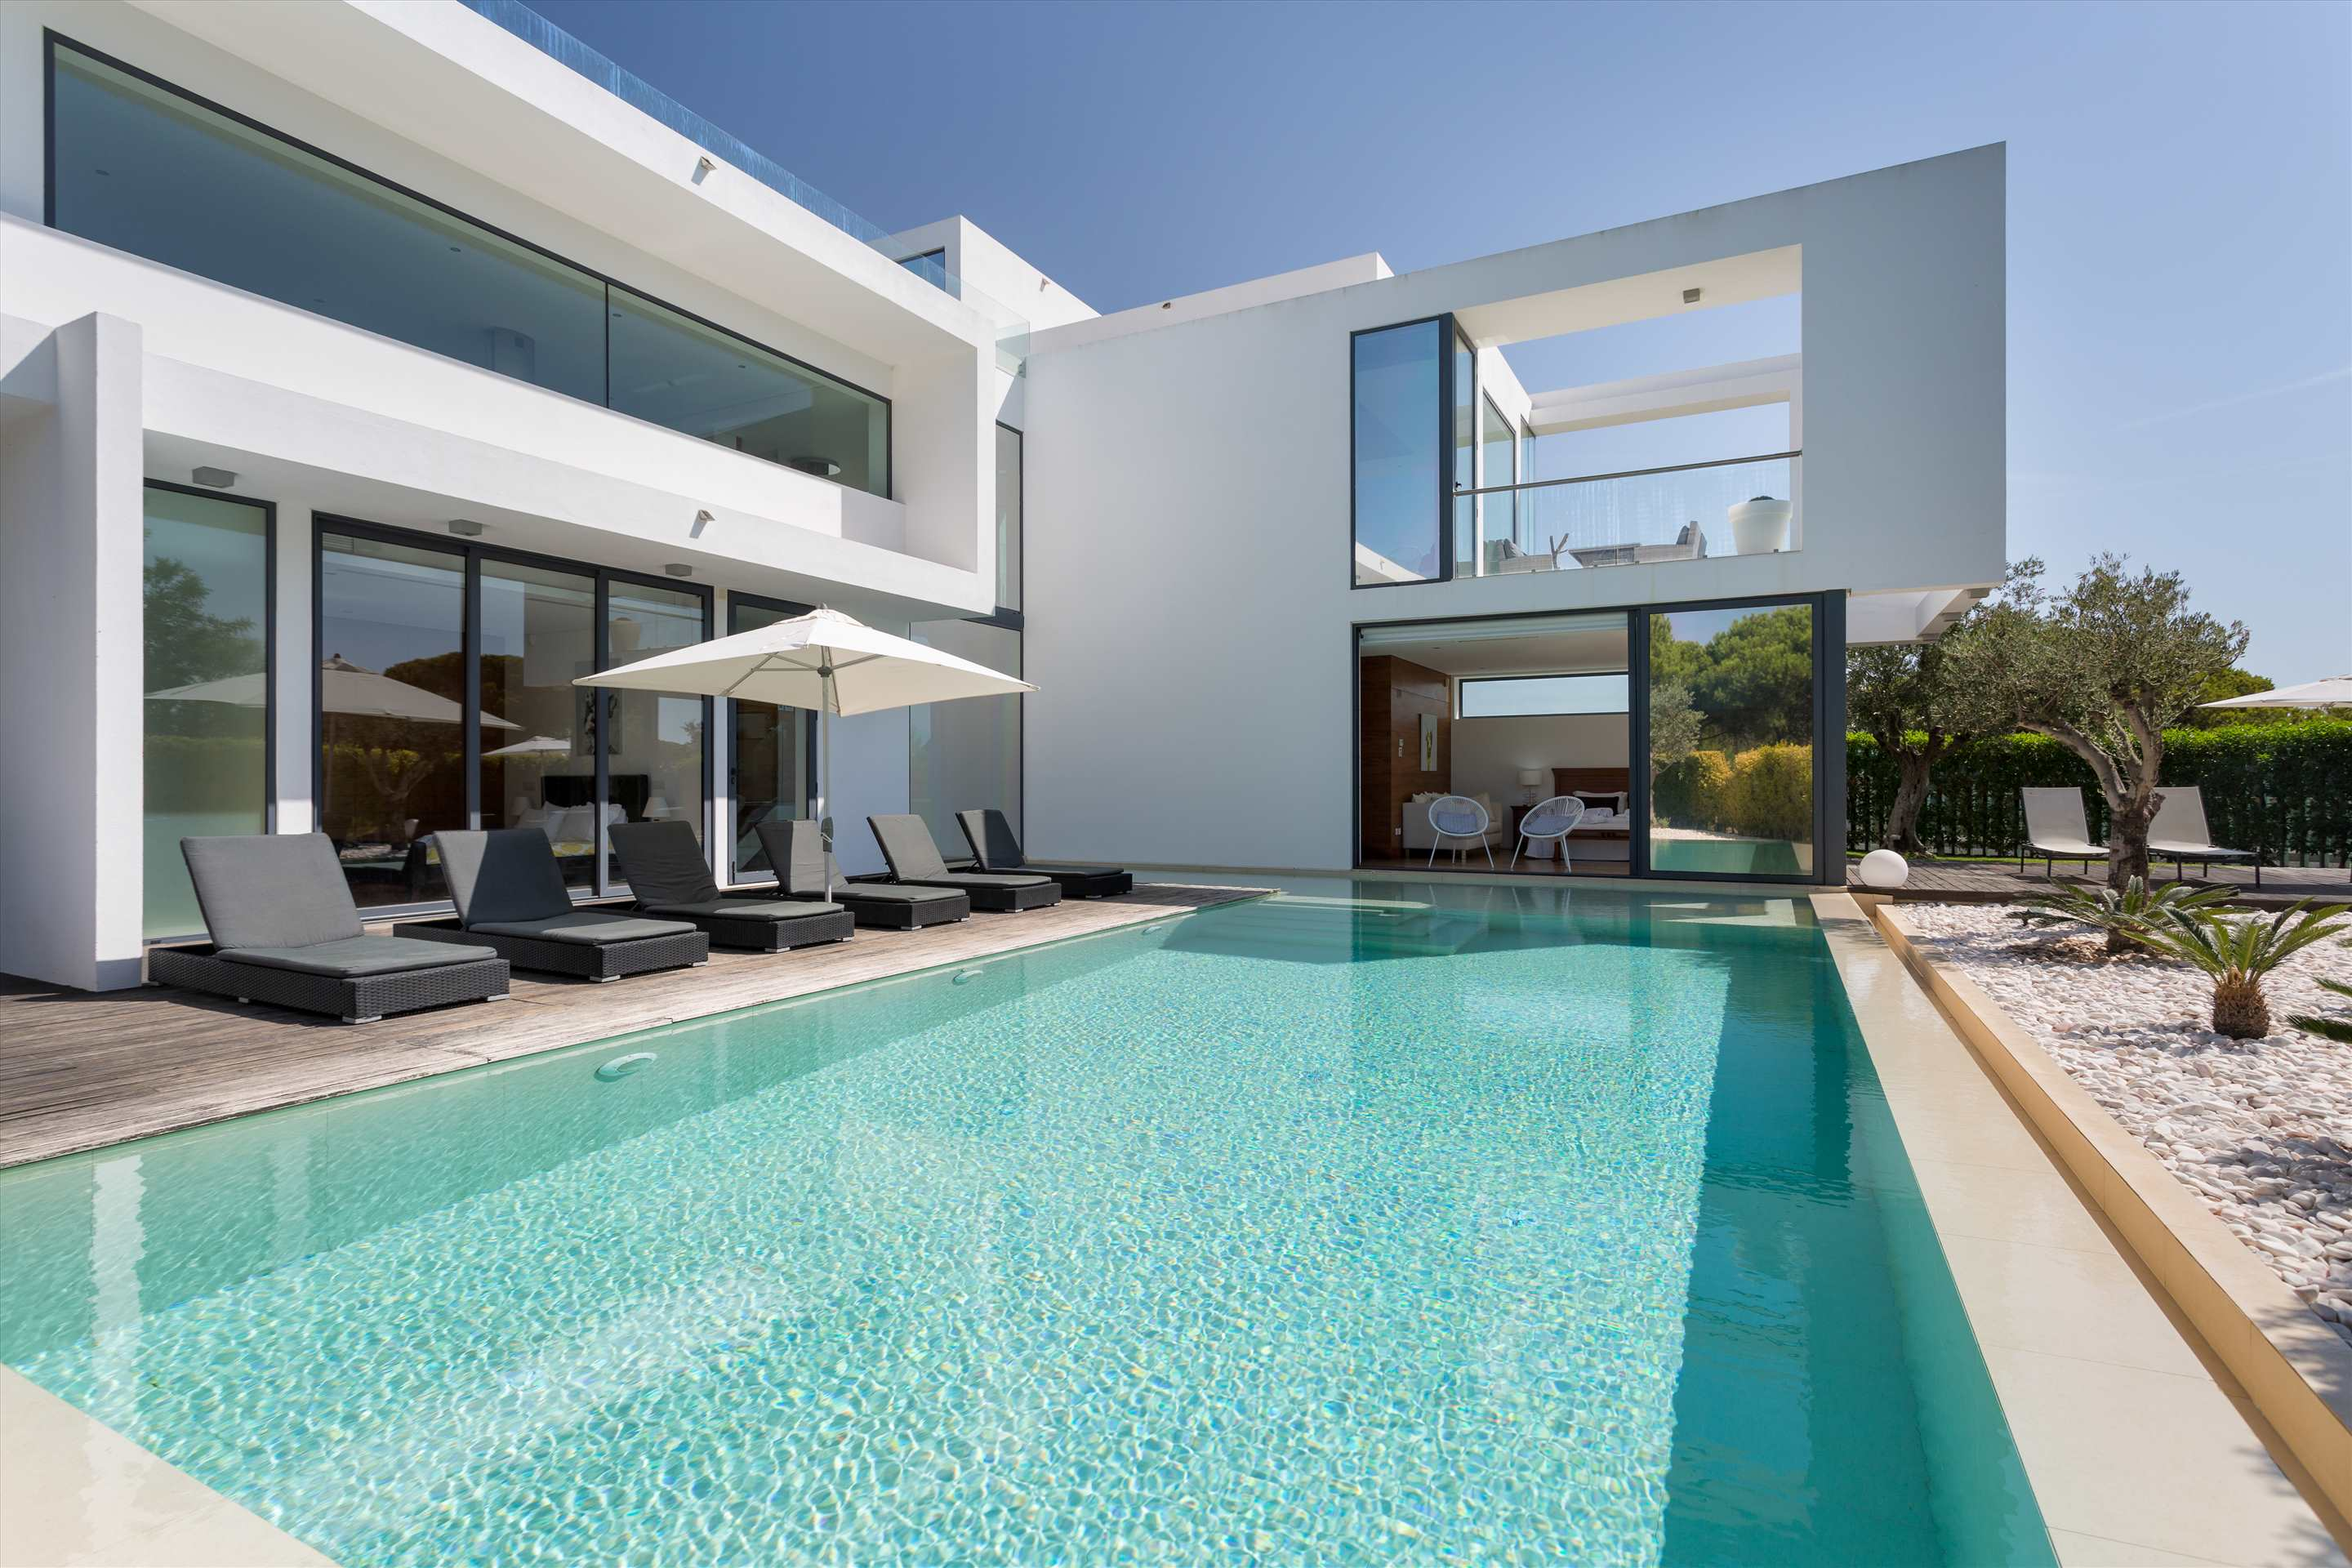 Villa Gemini, 4 bedroom villa in Vale do Lobo, Algarve Photo #1